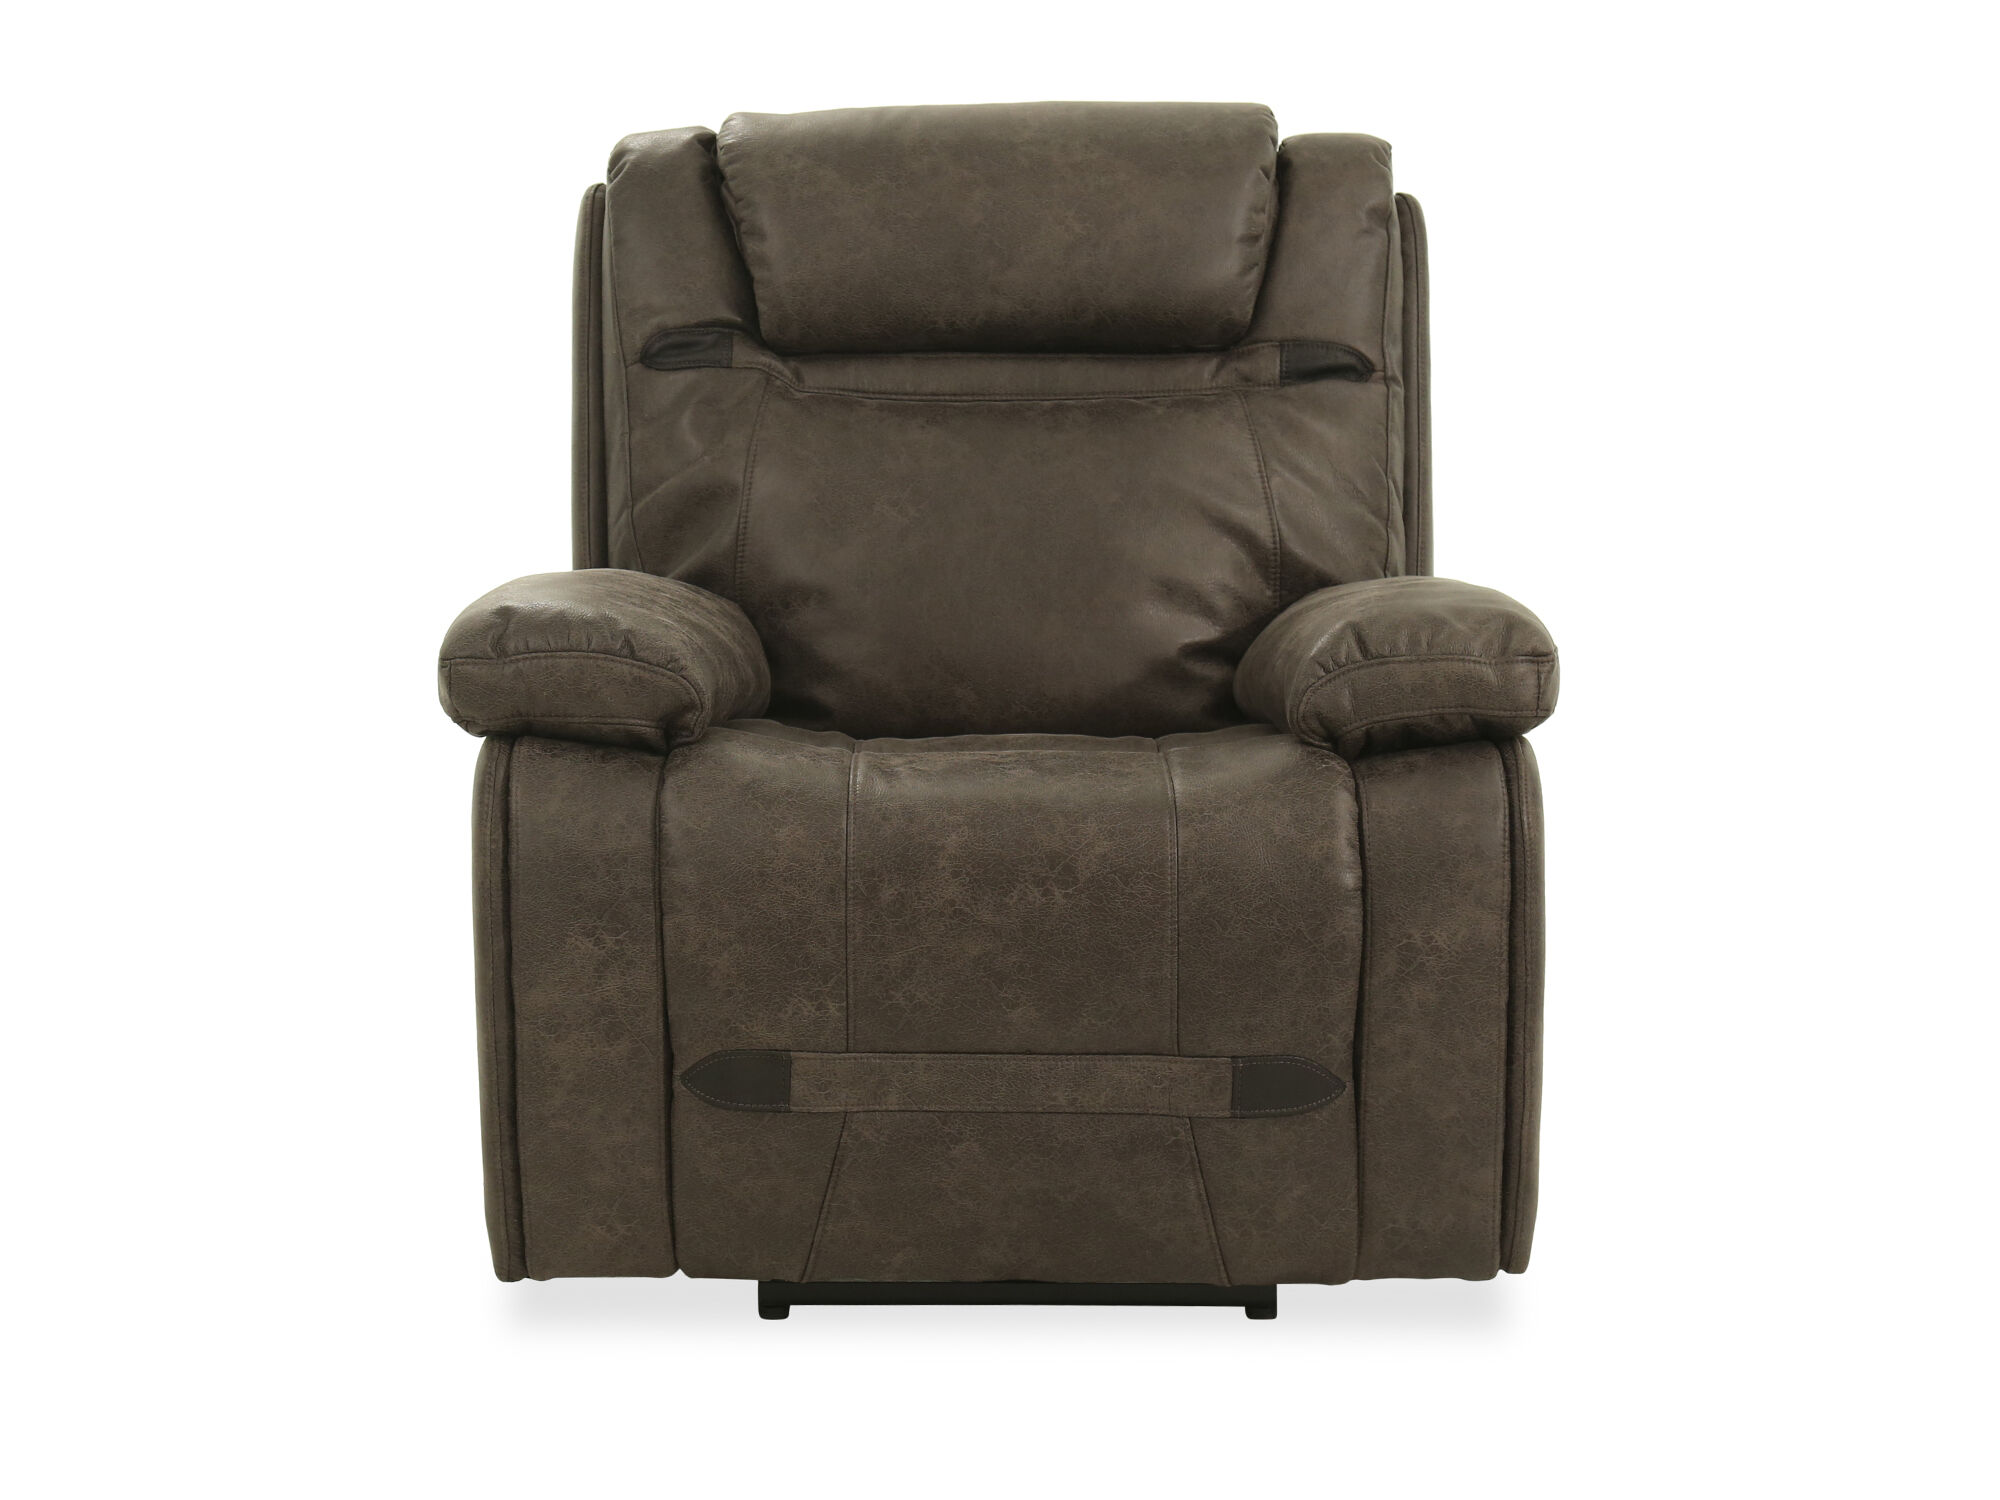 Electric Recliner Leather Chairs Leather 39 Power Recliner In Grey Mathis Brothers Furniture